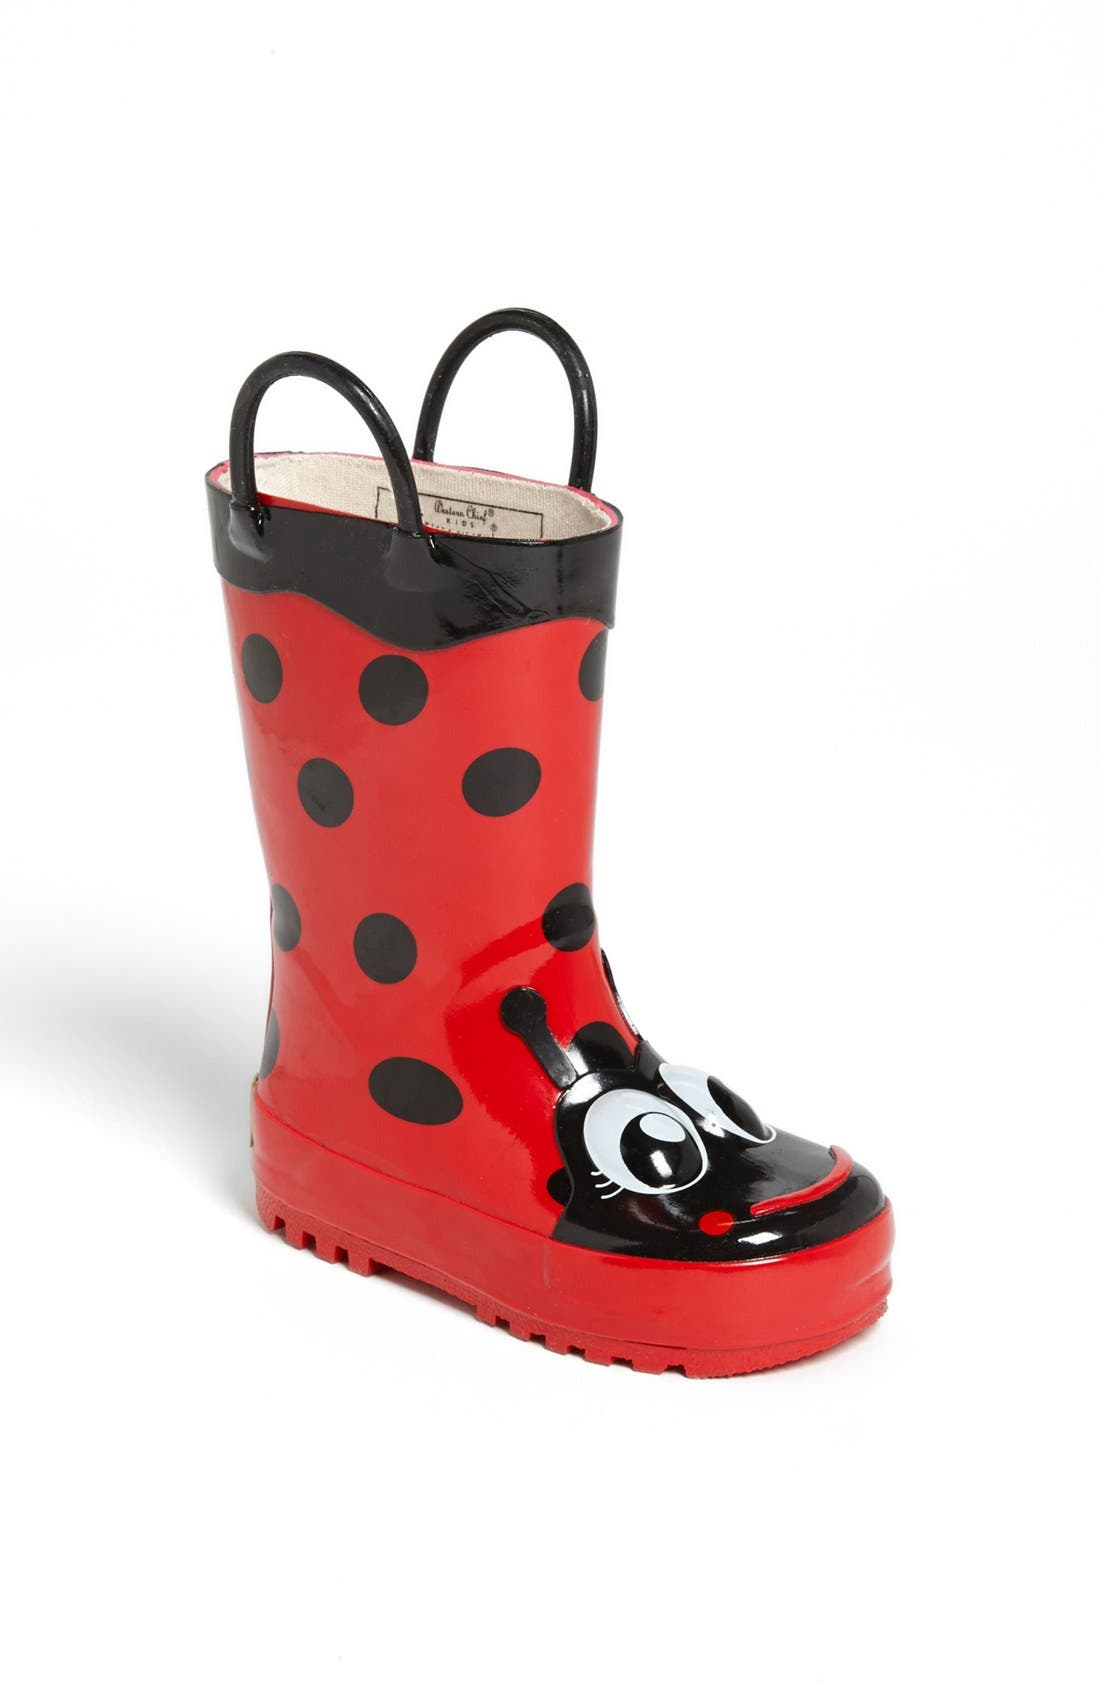 WESTERN CHIEF, Ladybug Waterproof Rain Boot, Main thumbnail 1, color, RED